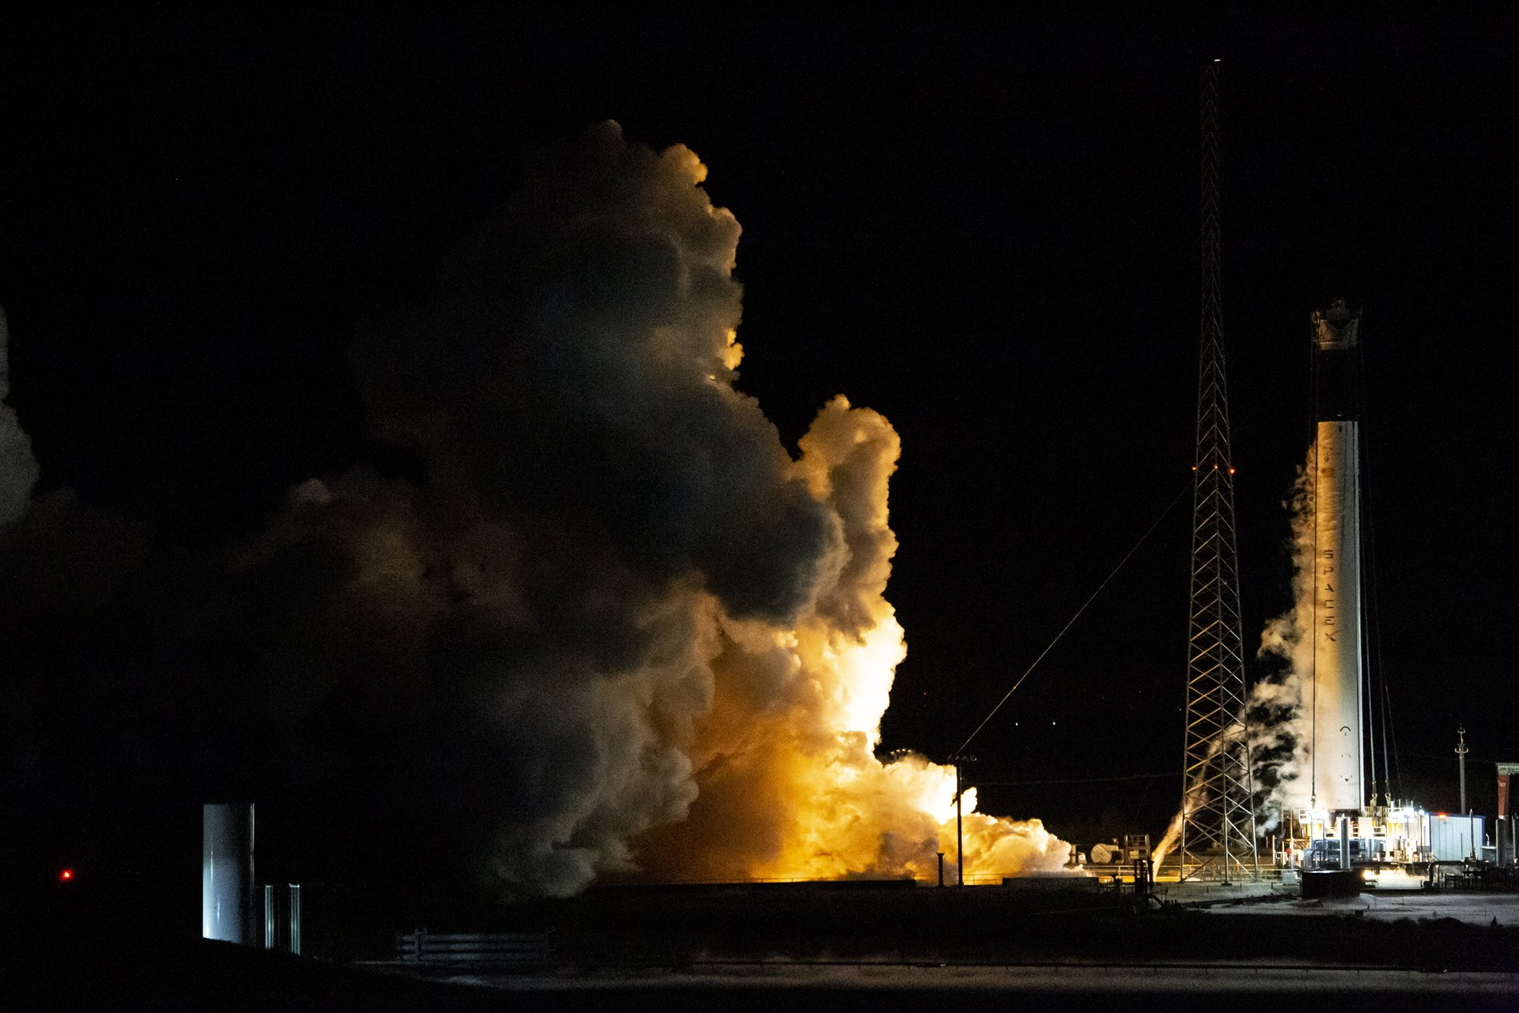 SpaceX Falcon 9 rocket for Commercial Crew Progam undergoes a test fire at McGregor Texas photo credit SpaceX